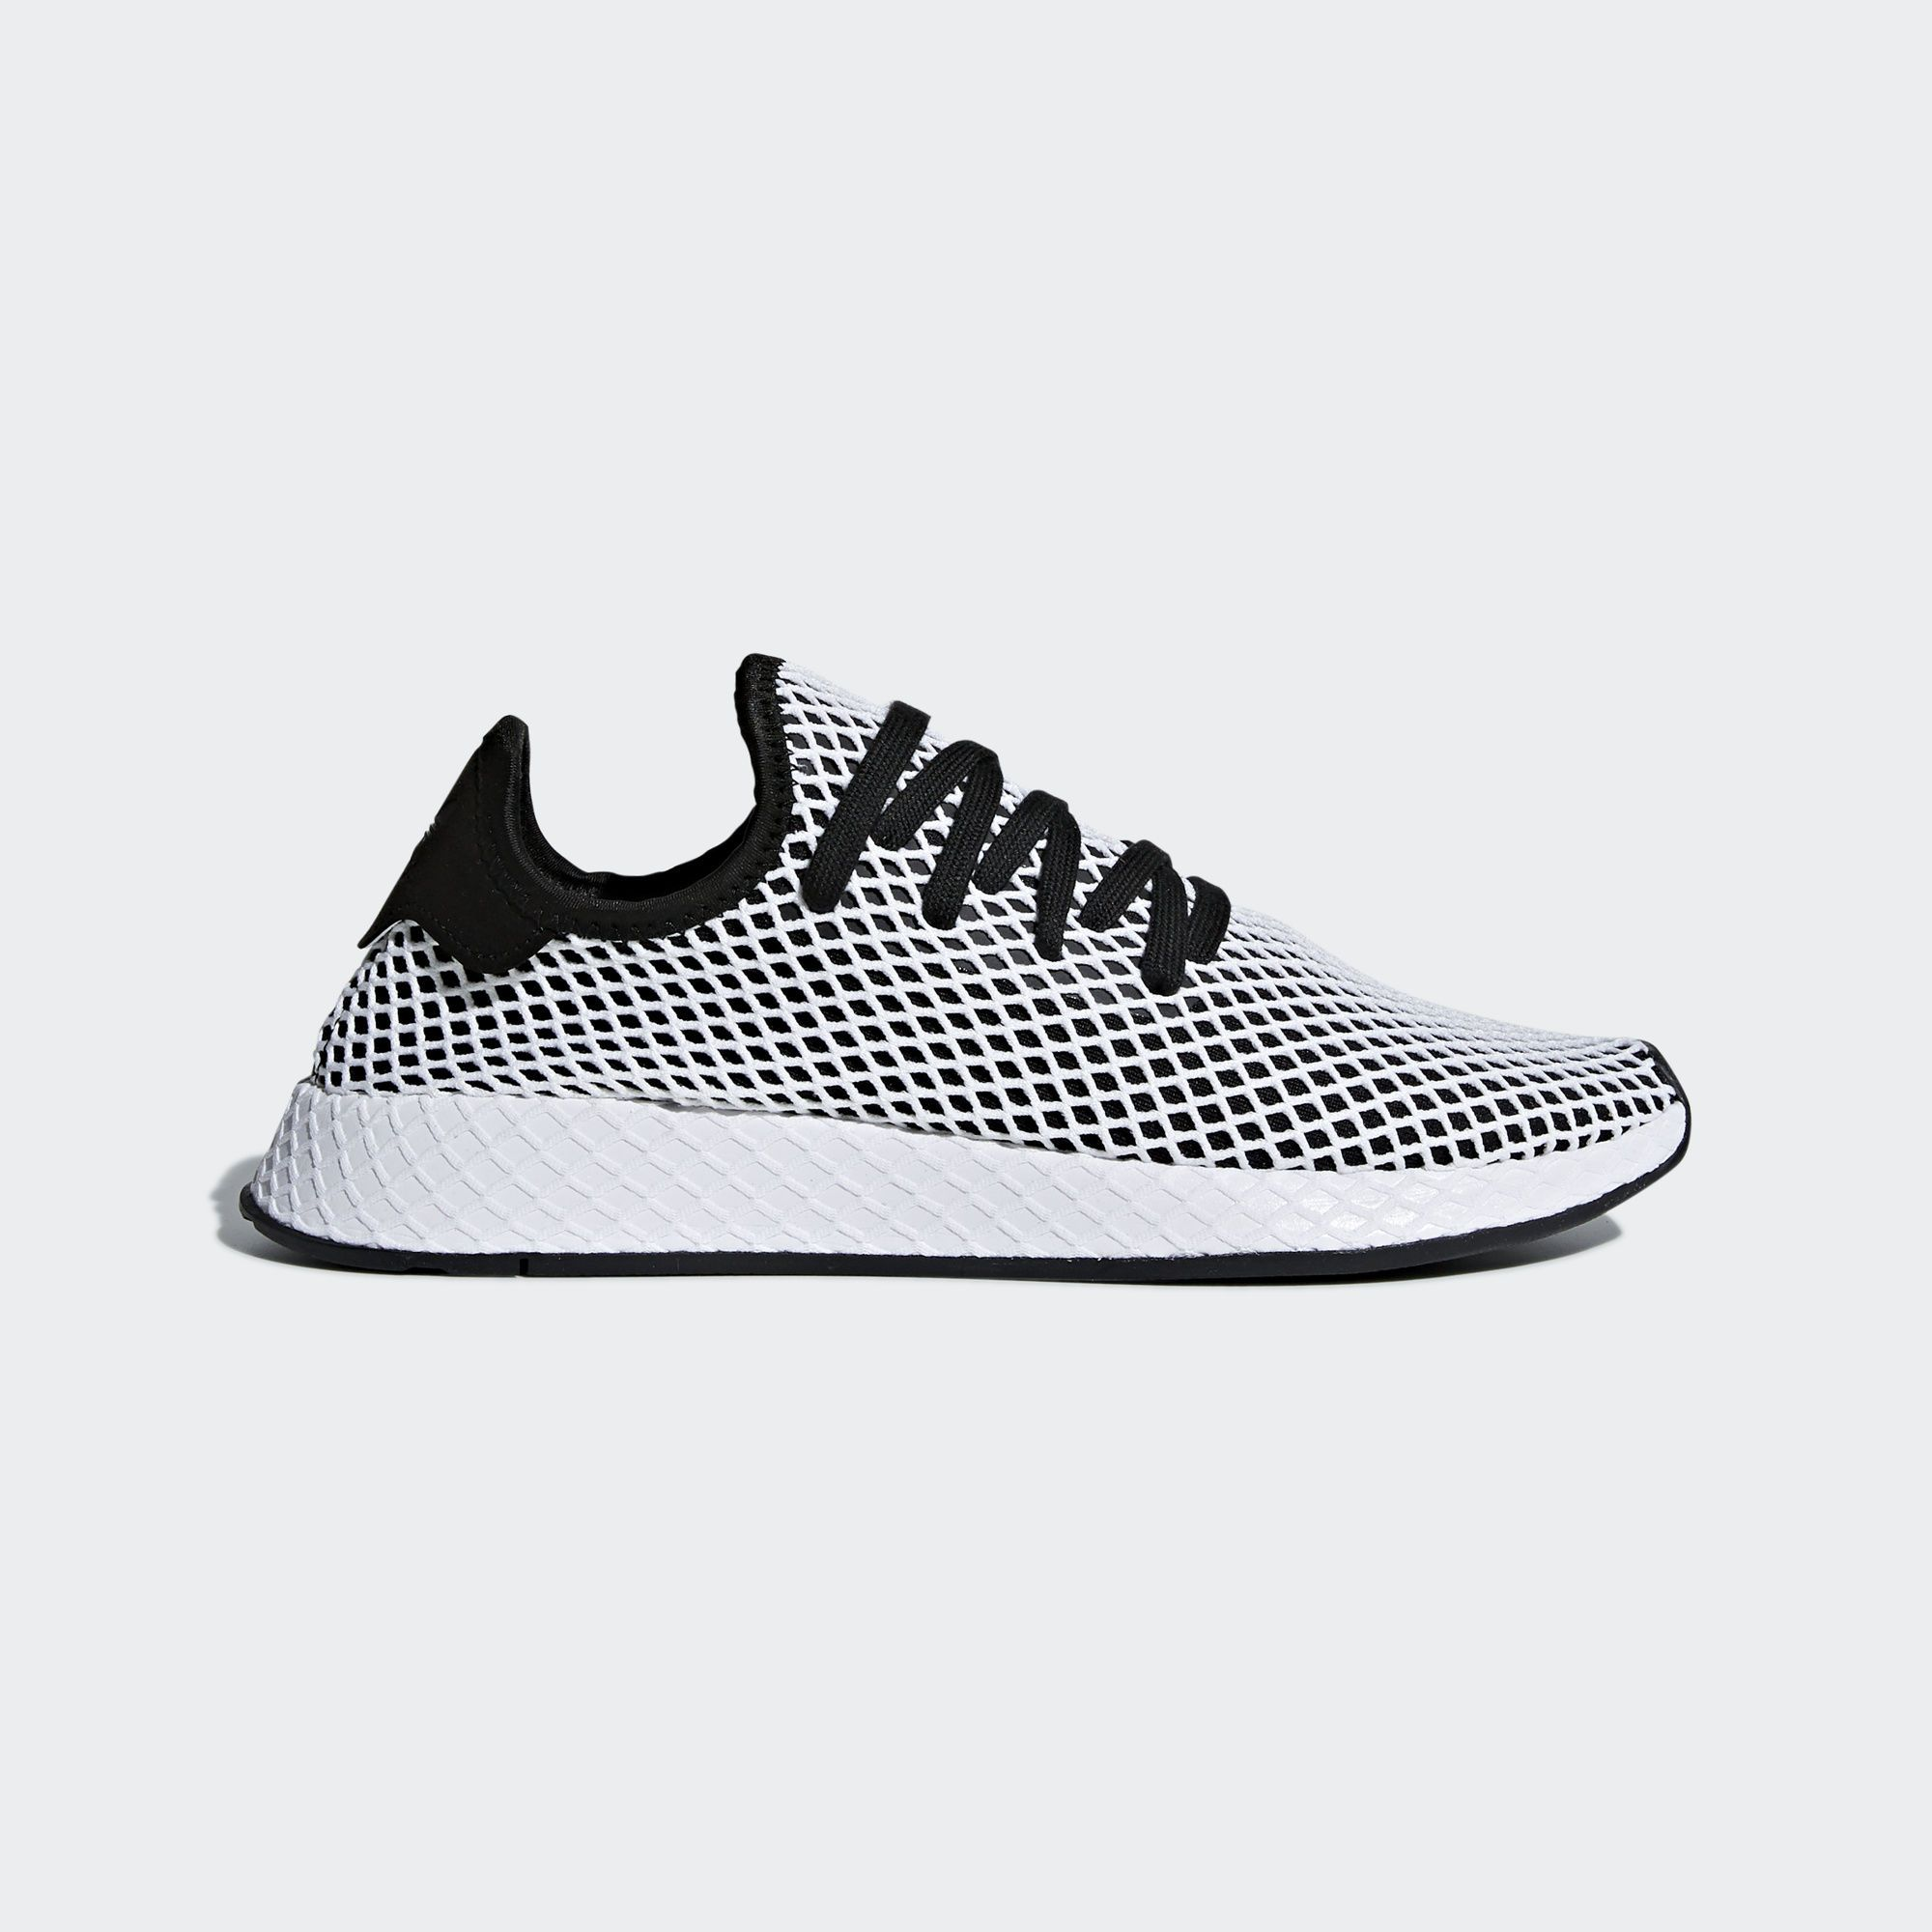 sale retailer f0981 a10eb Shop the Deerupt Runner Shoes - Black at adidas.comus! See all the styles  and colors of Deerupt Runner Shoes - Black at the official adidas online  shop.